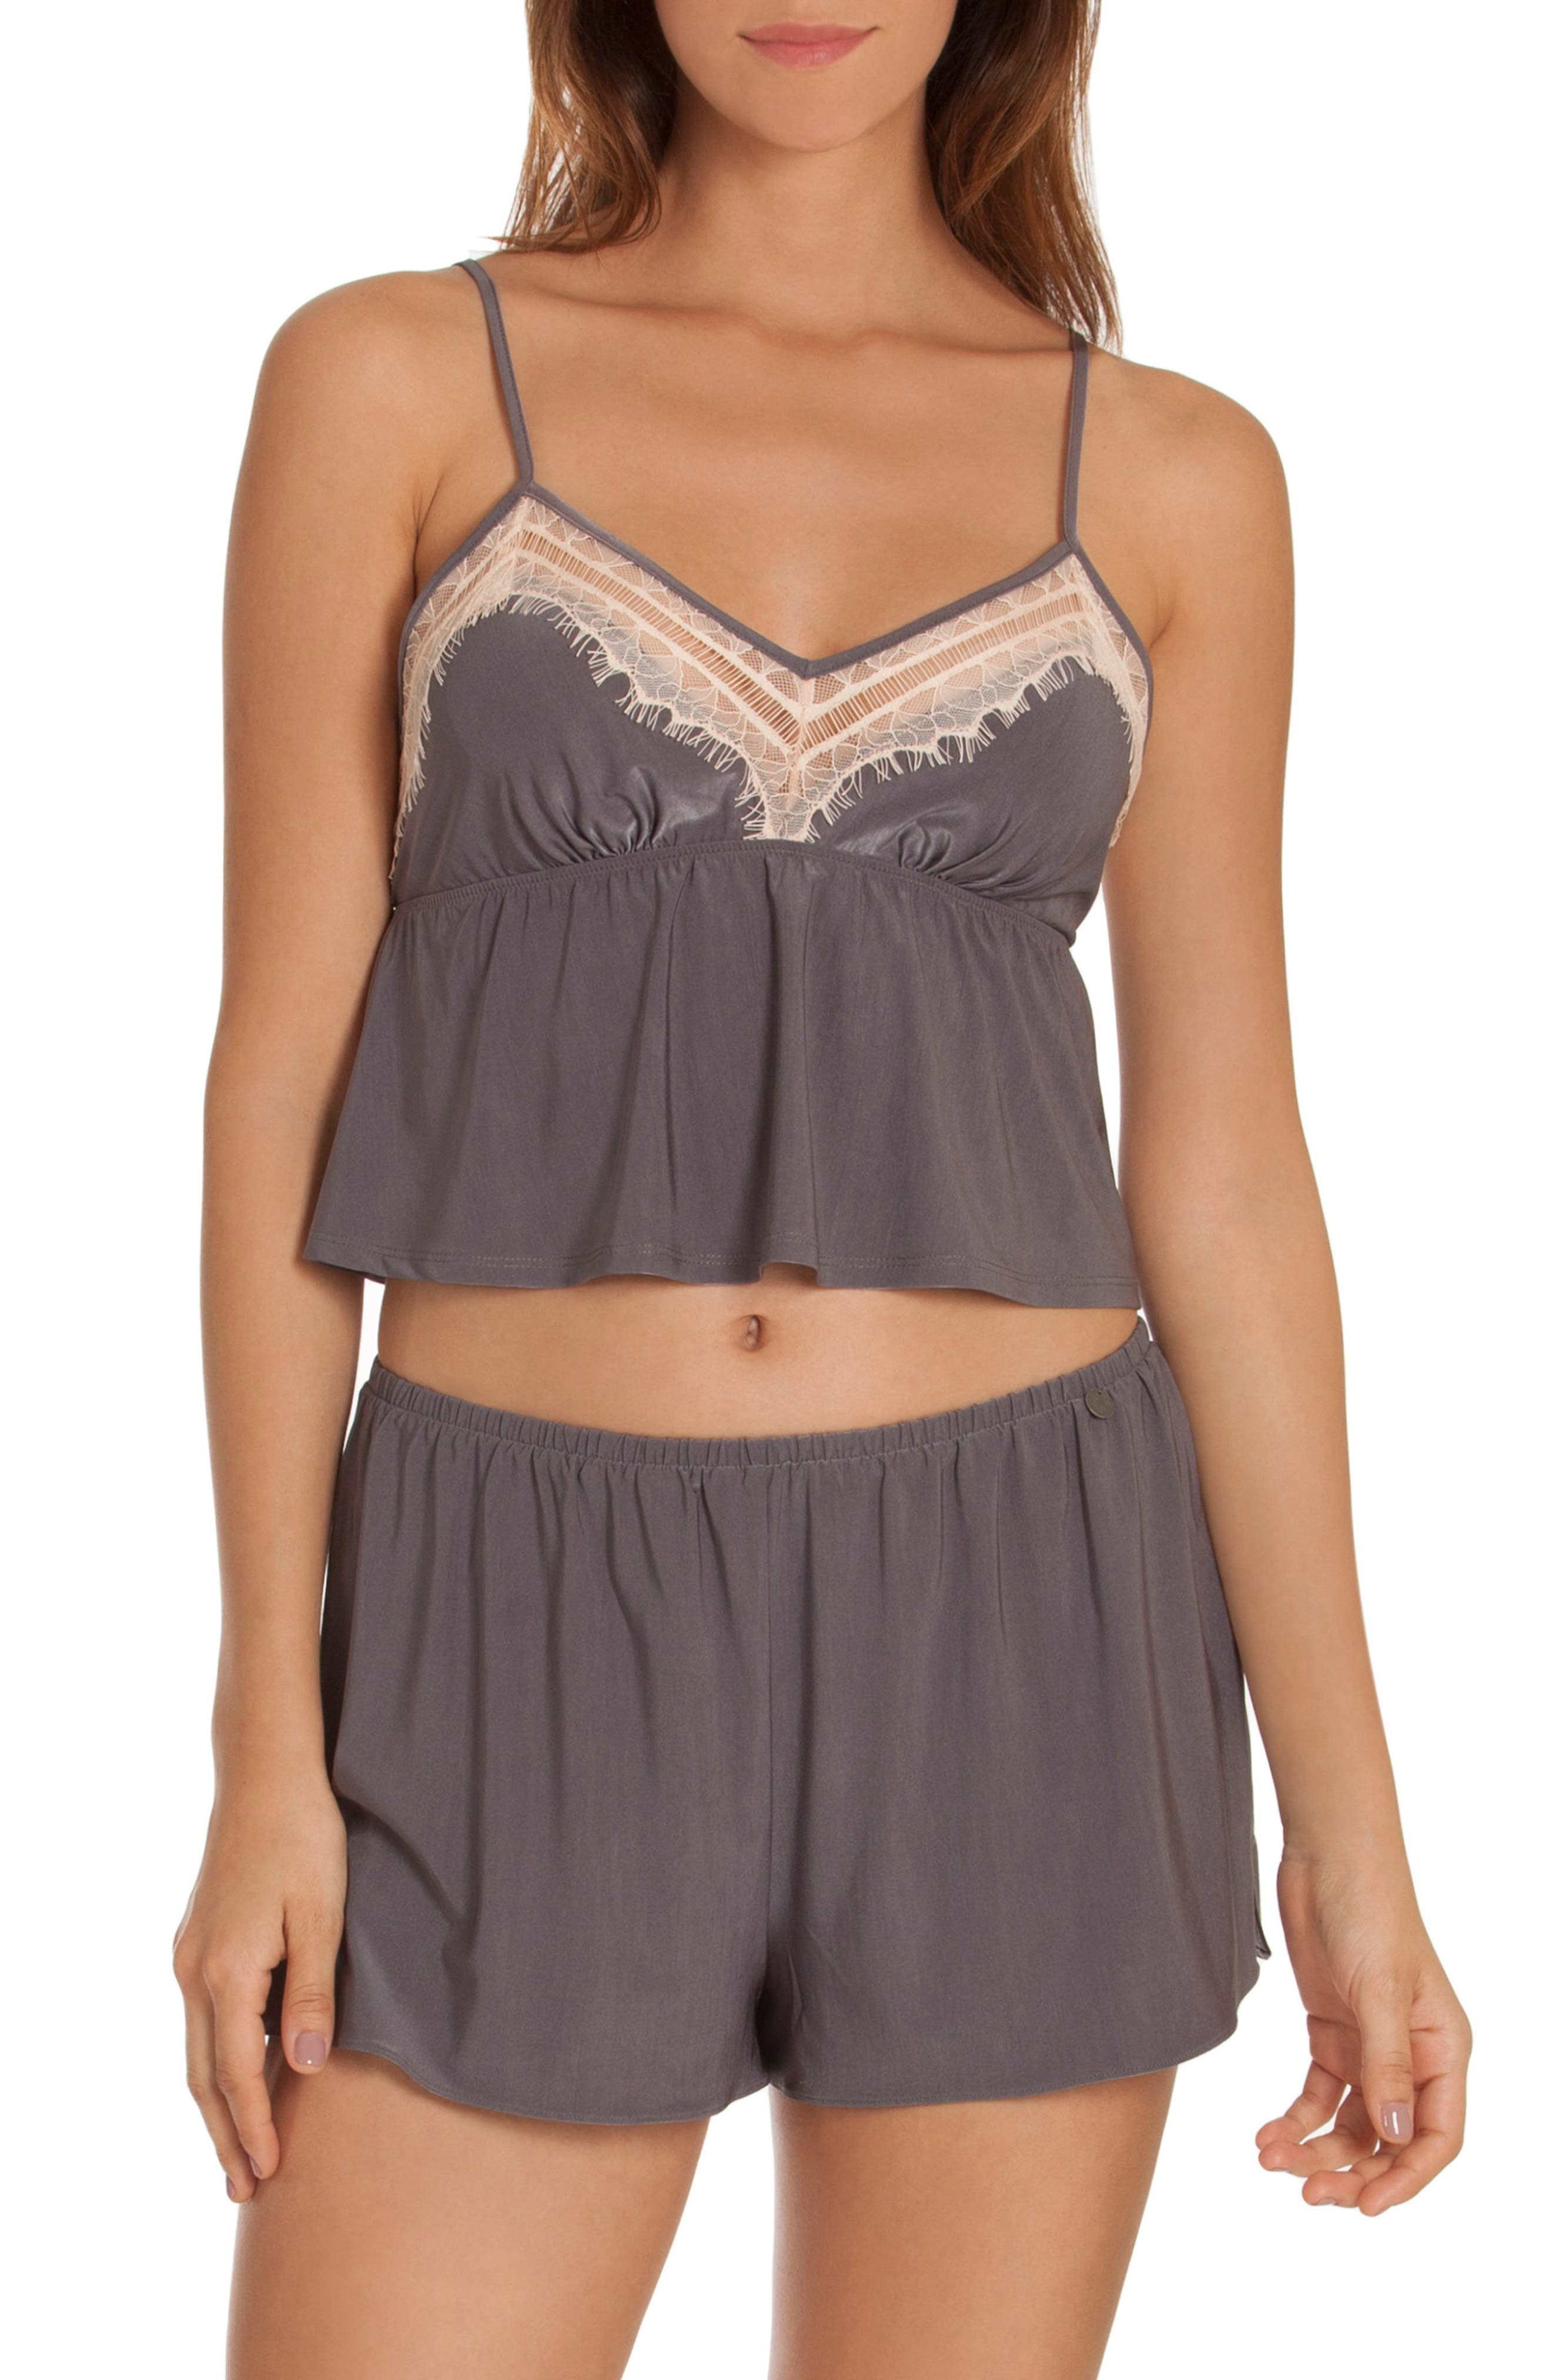 Midnight Bakery Cropped Camisole